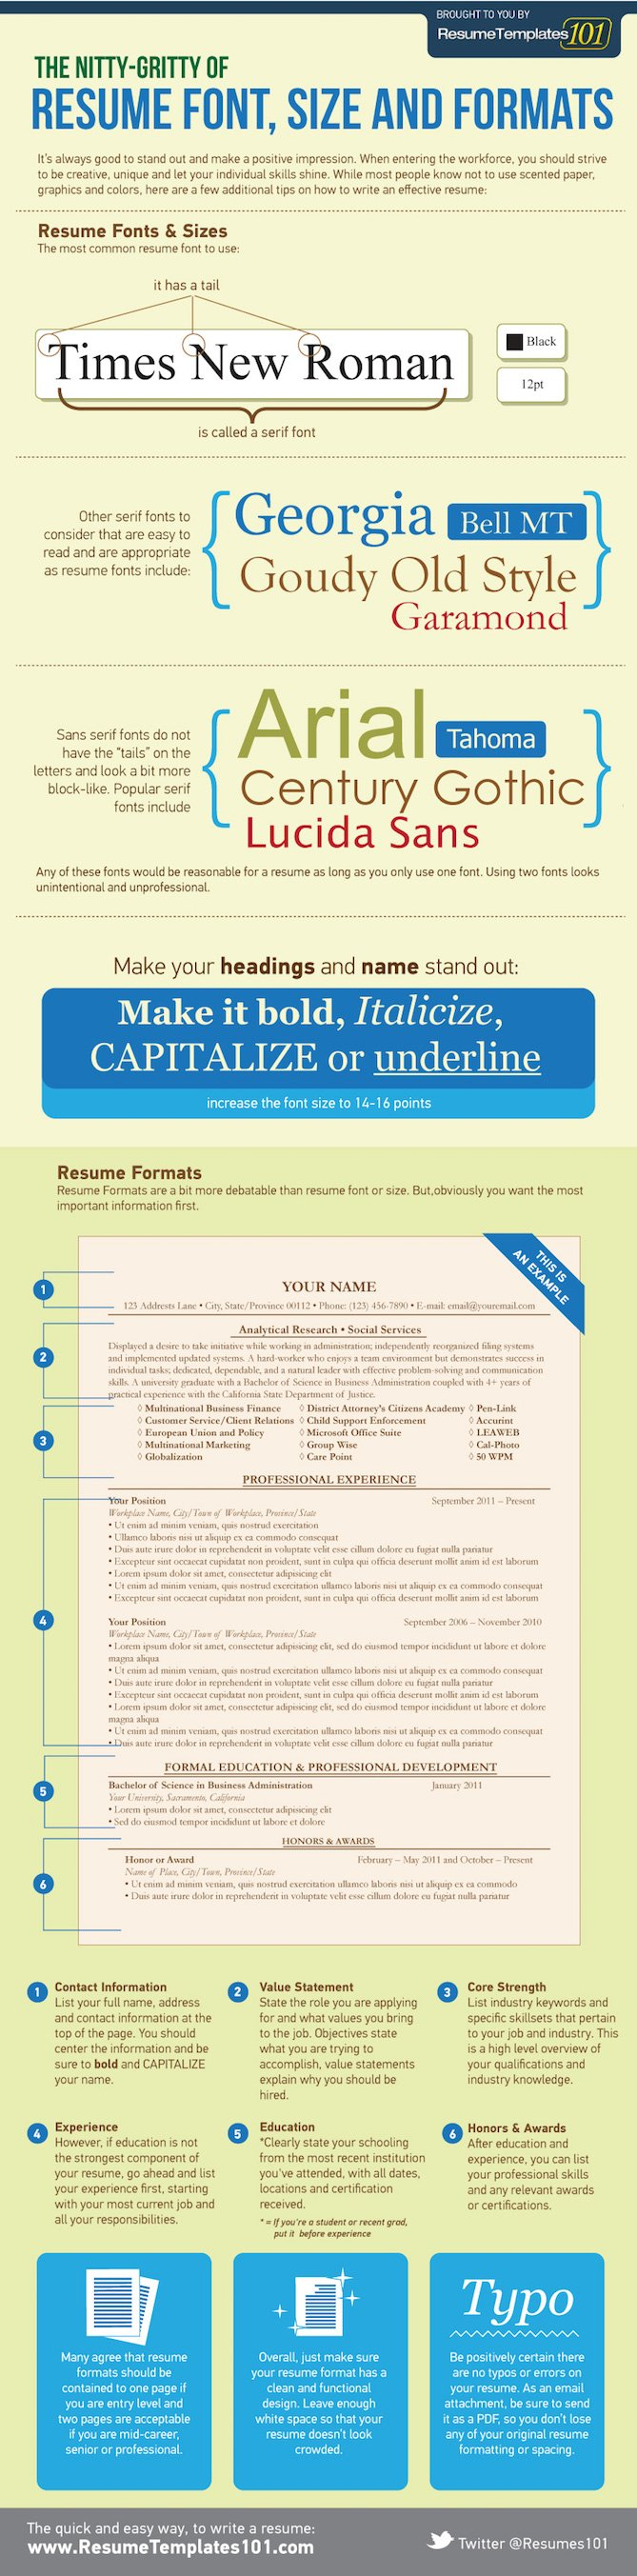 Resume Formats Infographic  Best Way To Format A Resume